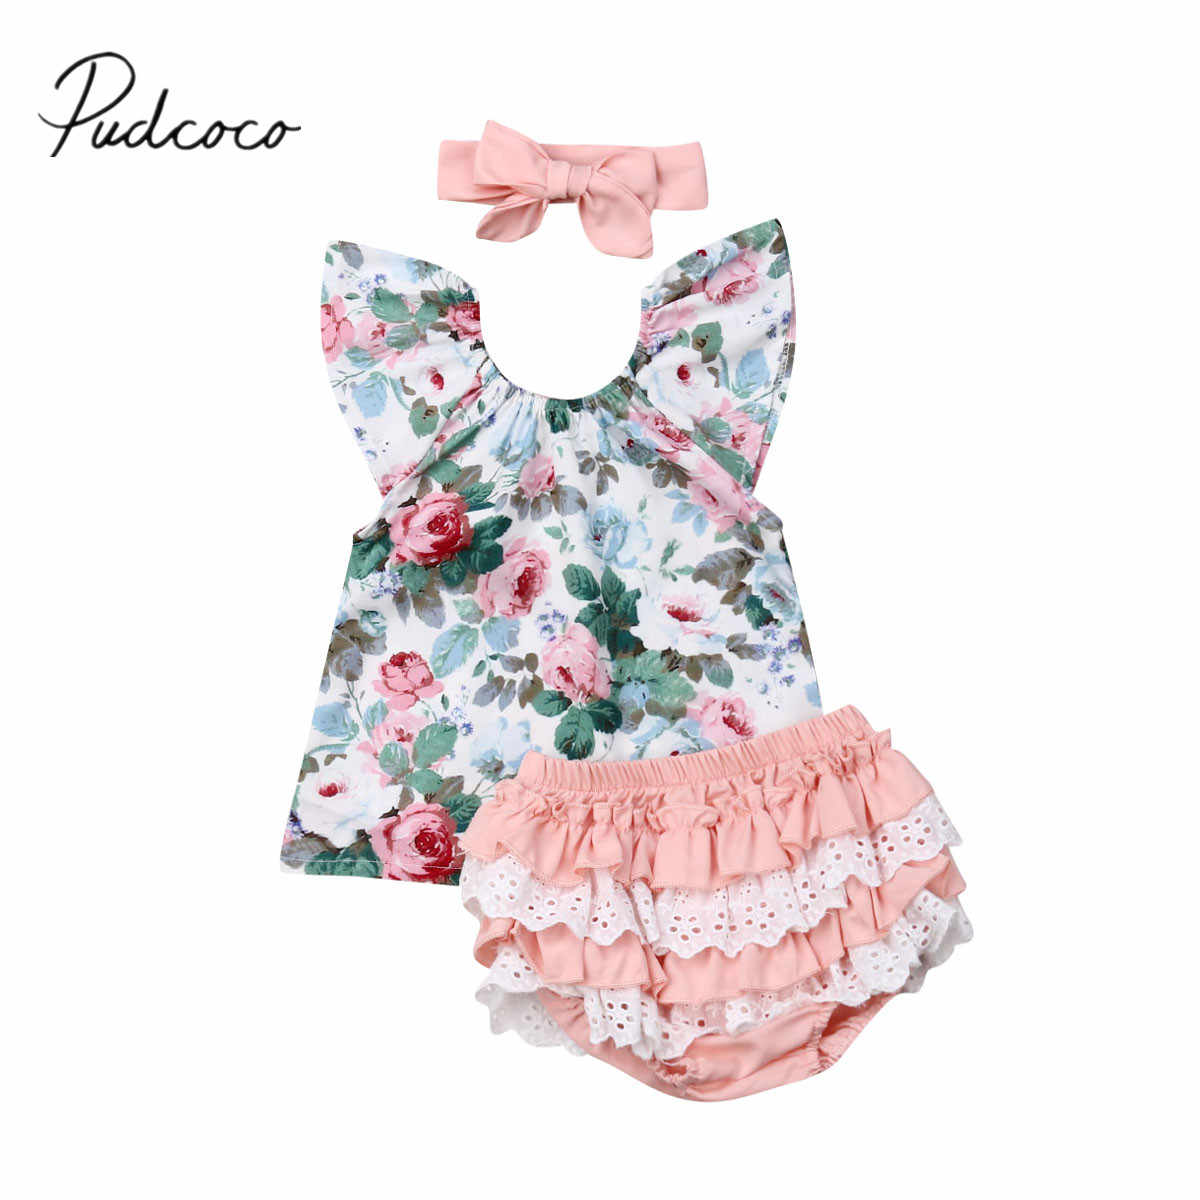 2019 Baby Zomer Kleding Peuter Kid Baby Meisje Ruches Korte Mouwen Bloemen Tops Shirt PP Shorts Hoofdband 3Pcs Outfits sets 0-3Y